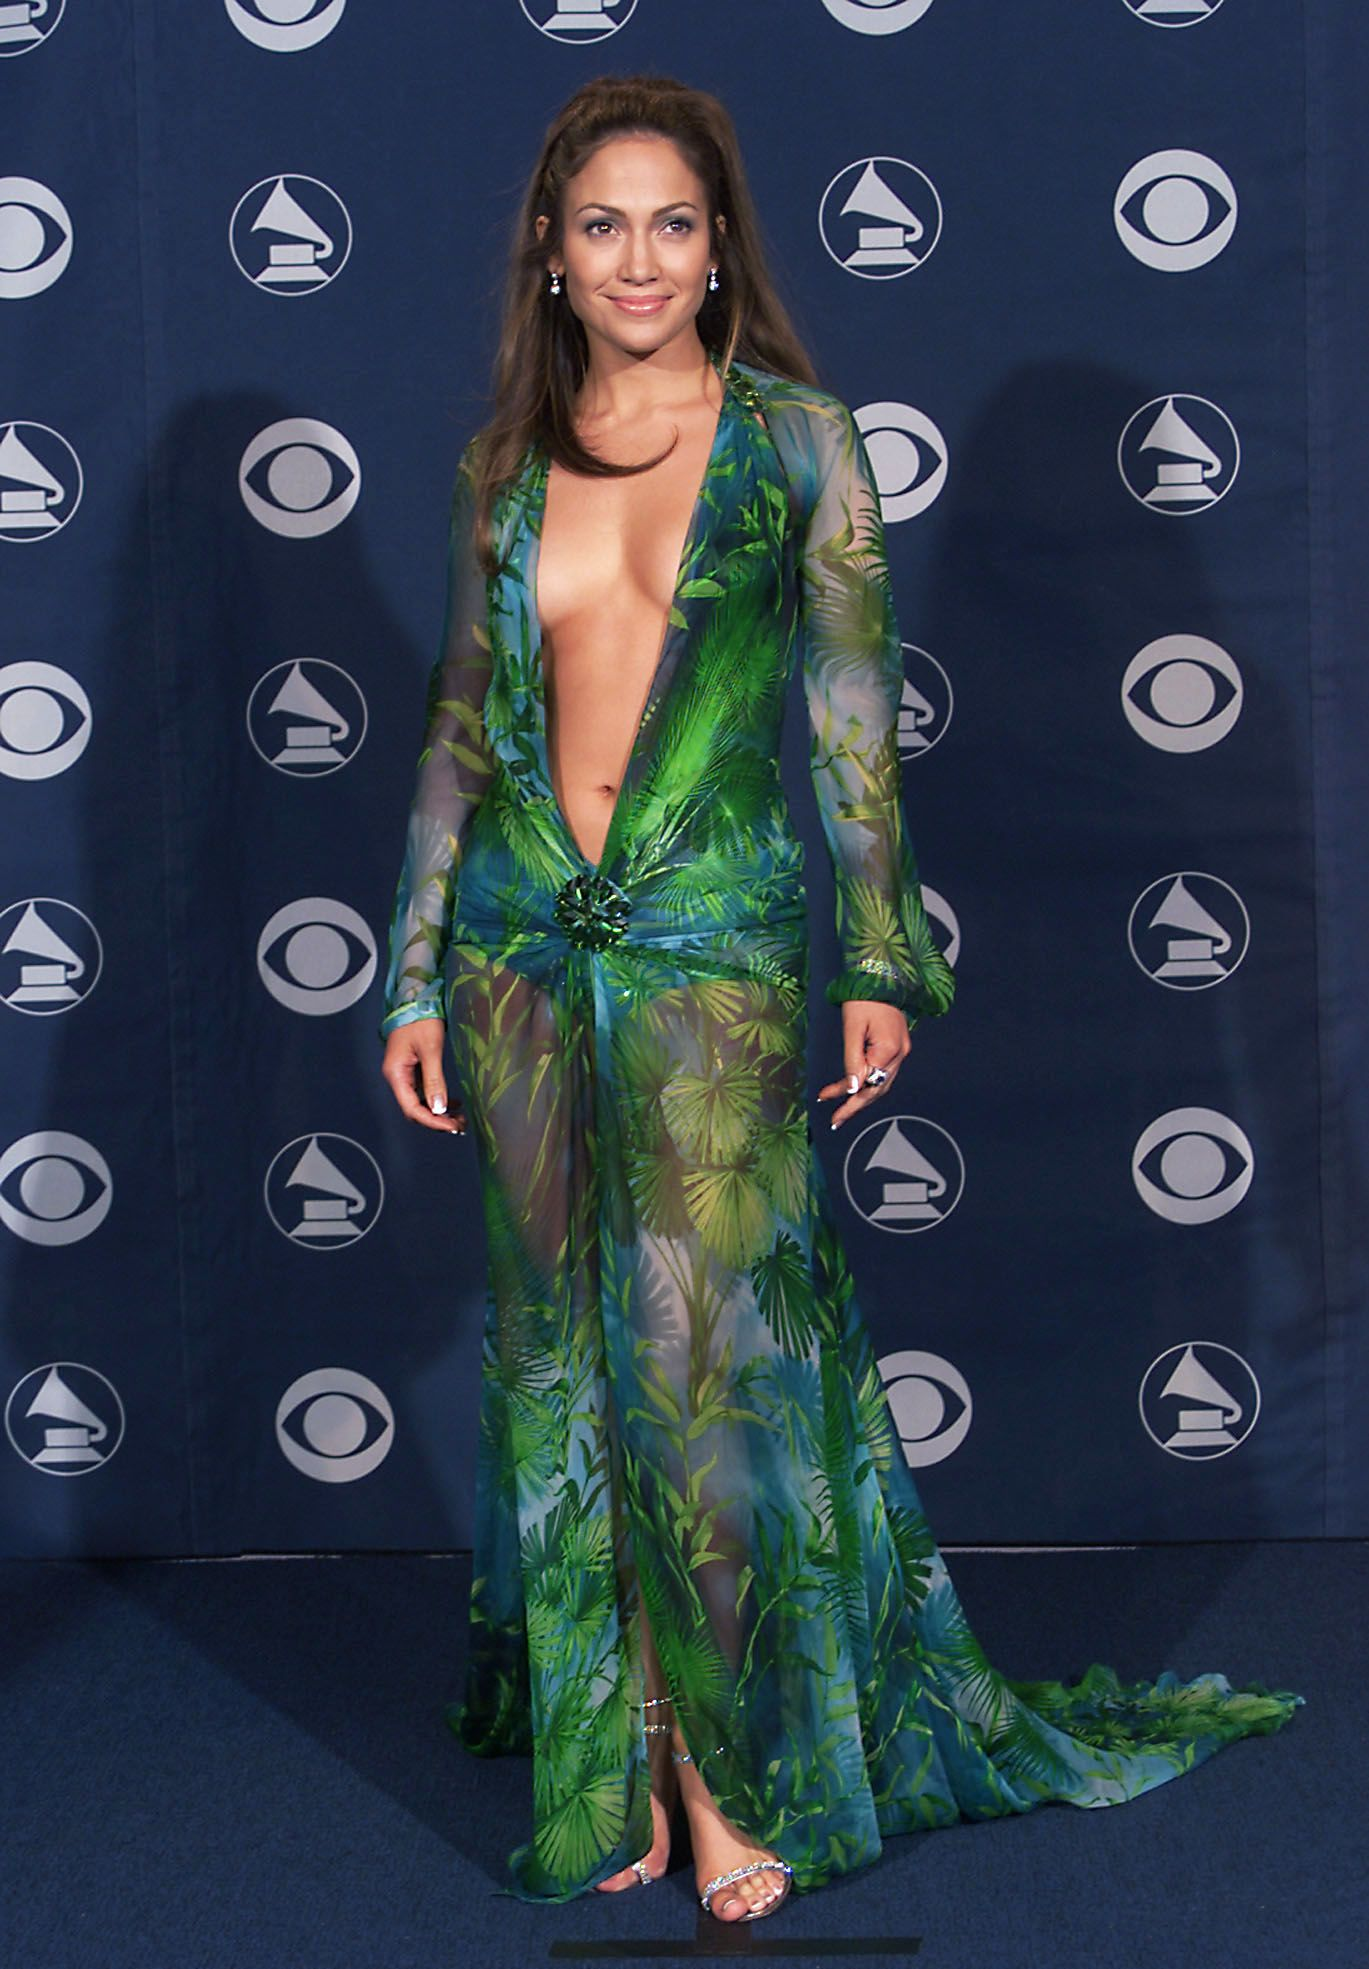 Jennifer Lopez in Versace at the 42nd Grammy Awards held in Los Angeles, California on February 23, 2000 | Photo: Scott Gries/ImageDirect/Getty Images